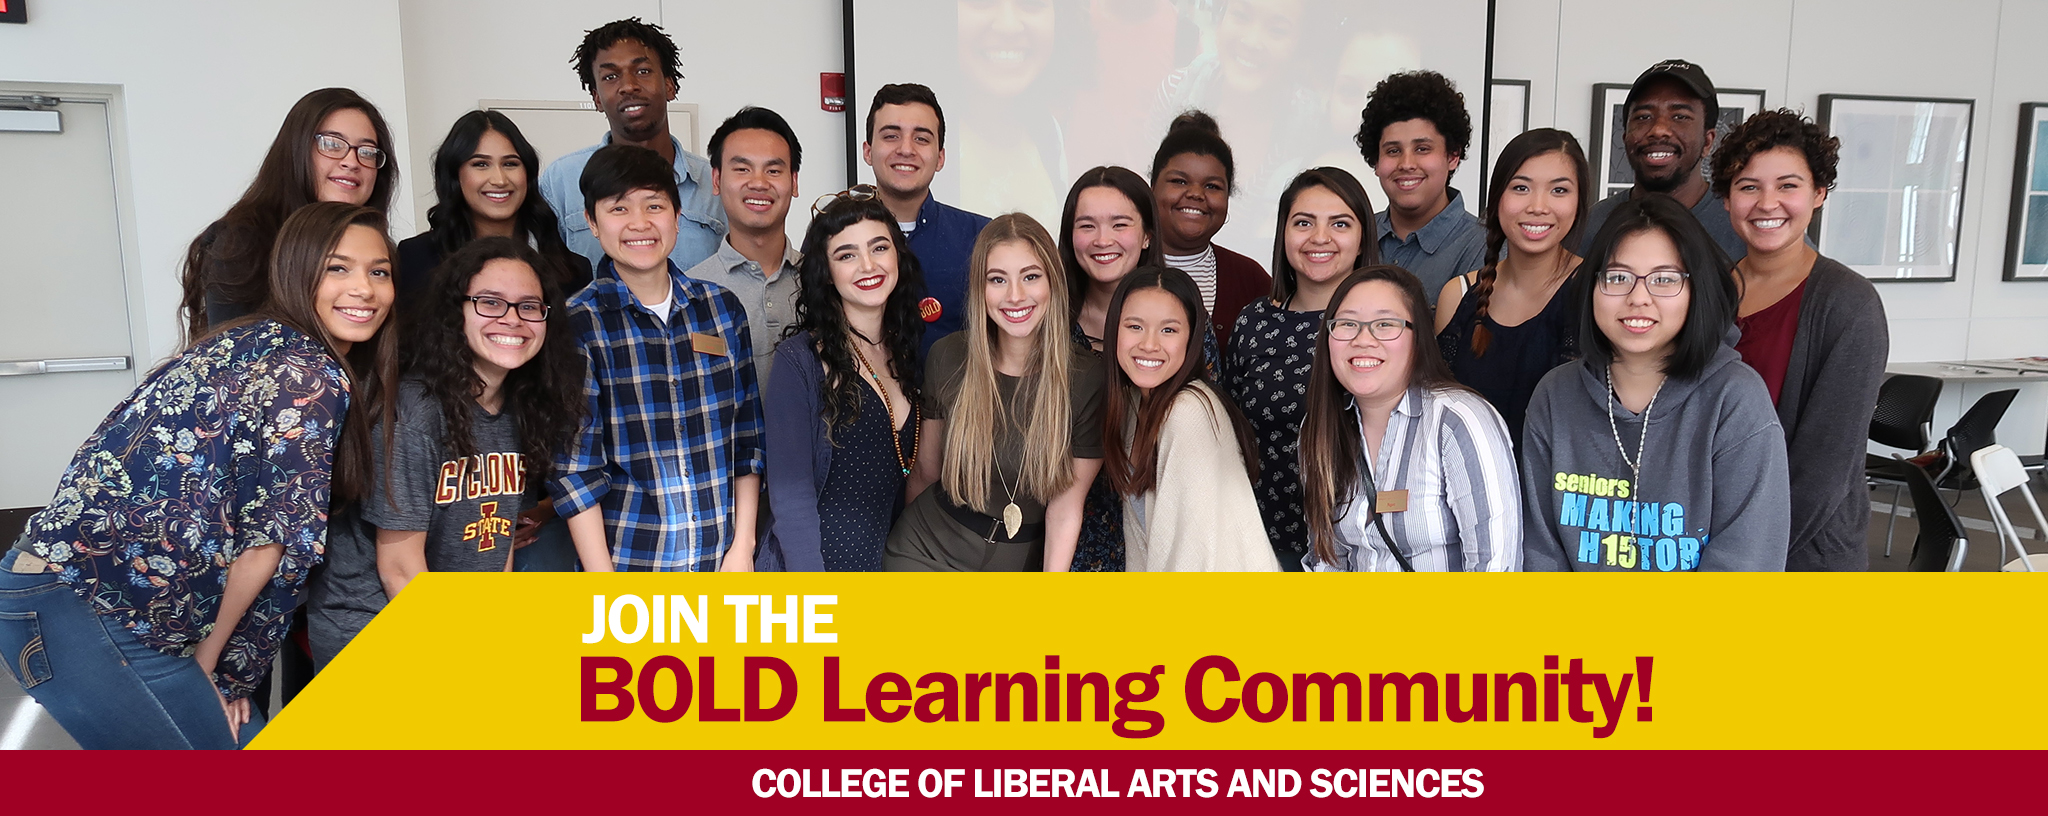 Join the BOLD Learning Community